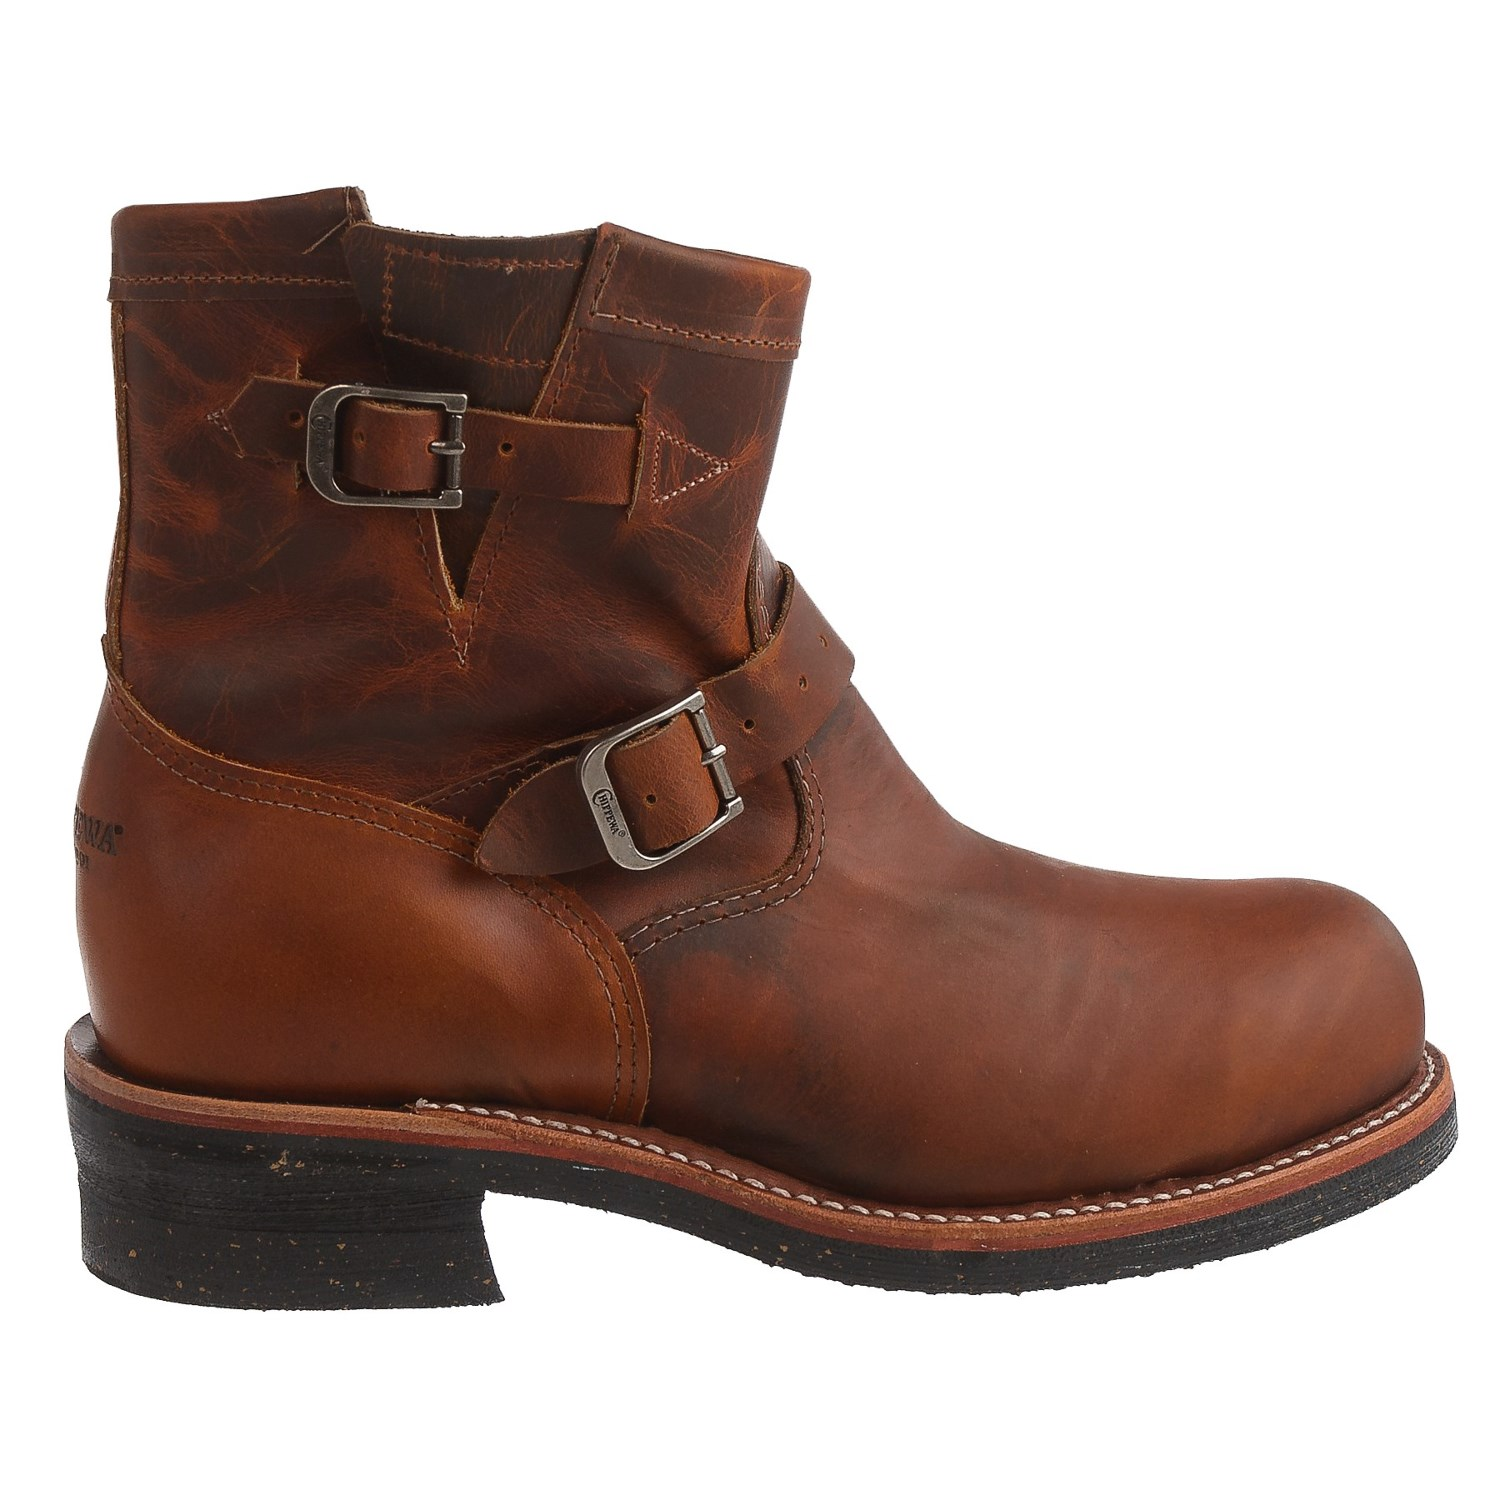 Chippewa Renegade Engineer Work Boots Steel Safety Toe